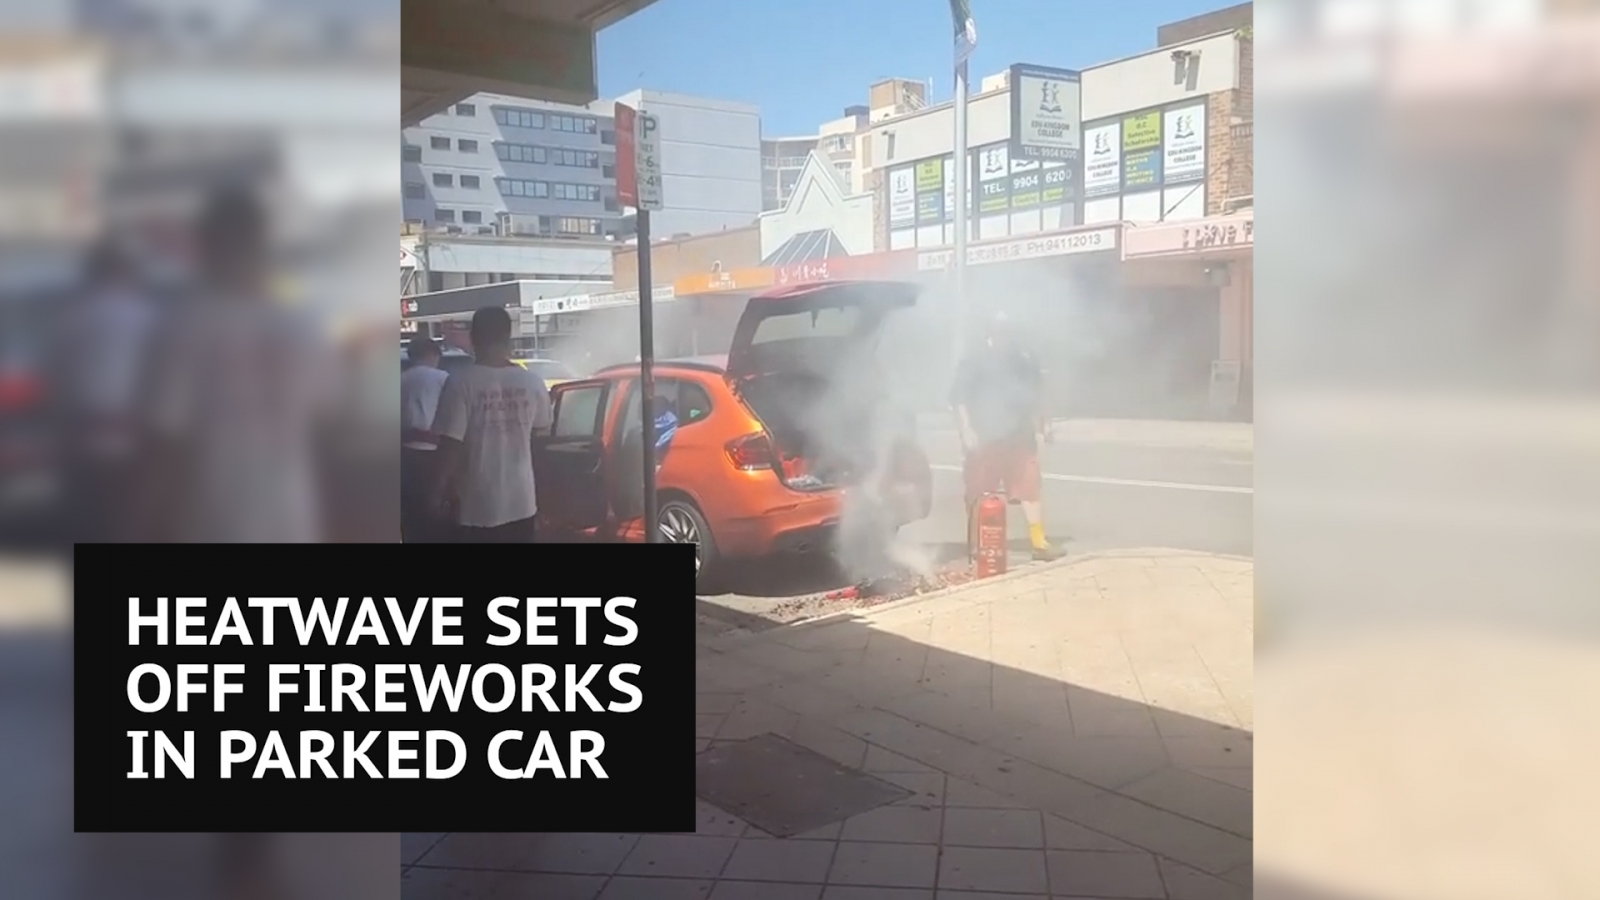 Australia: heatwave sets off fireworks in car